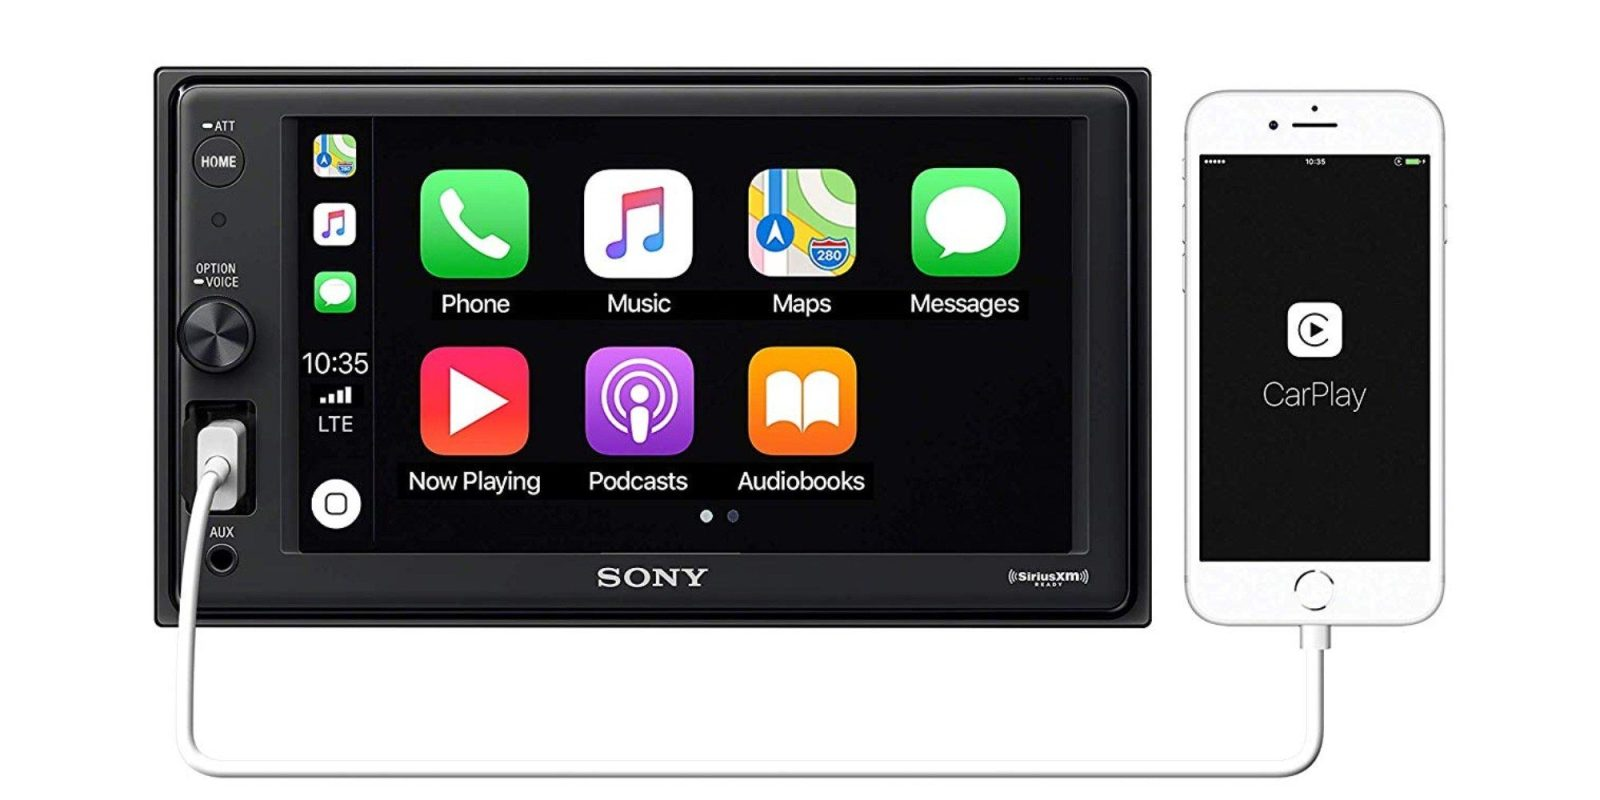 Thursday deals: Sony CarPlay Receiver $236, Twelve South launches Back to School sale, more